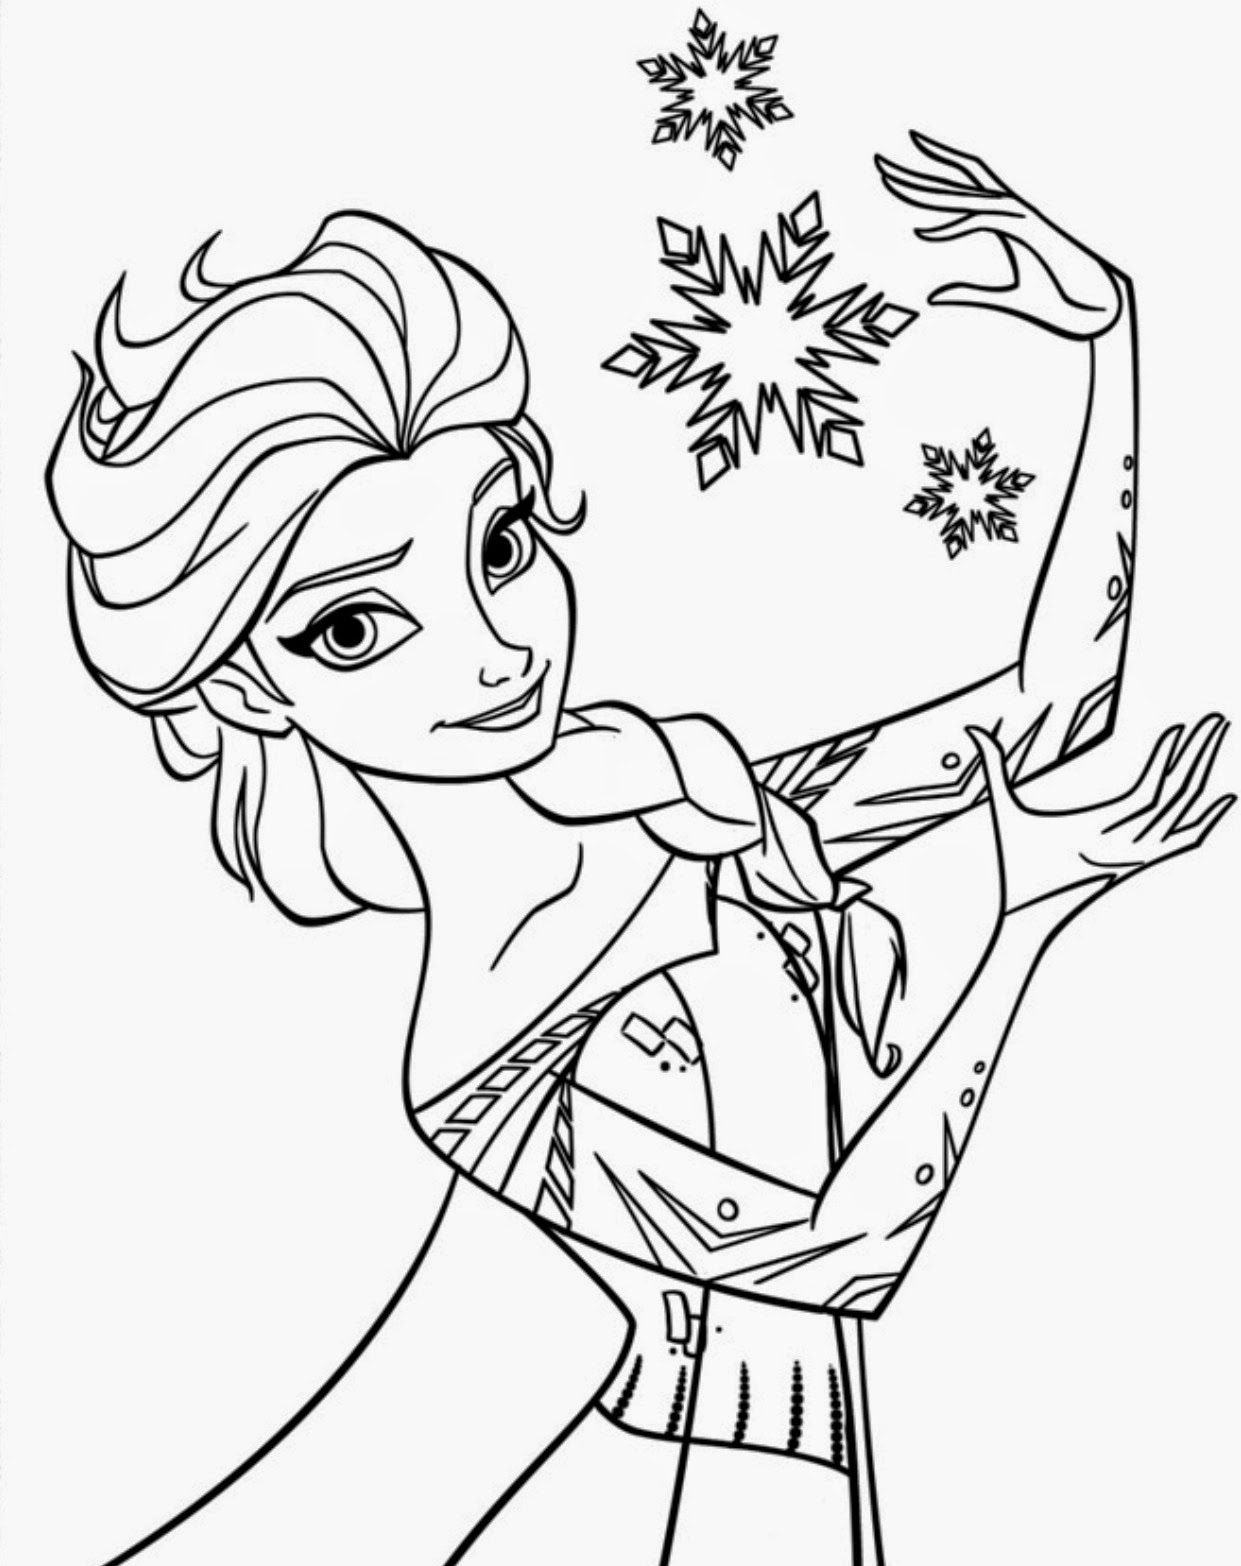 coloring free ghostbusters coloring pages to download and print for free coloring free